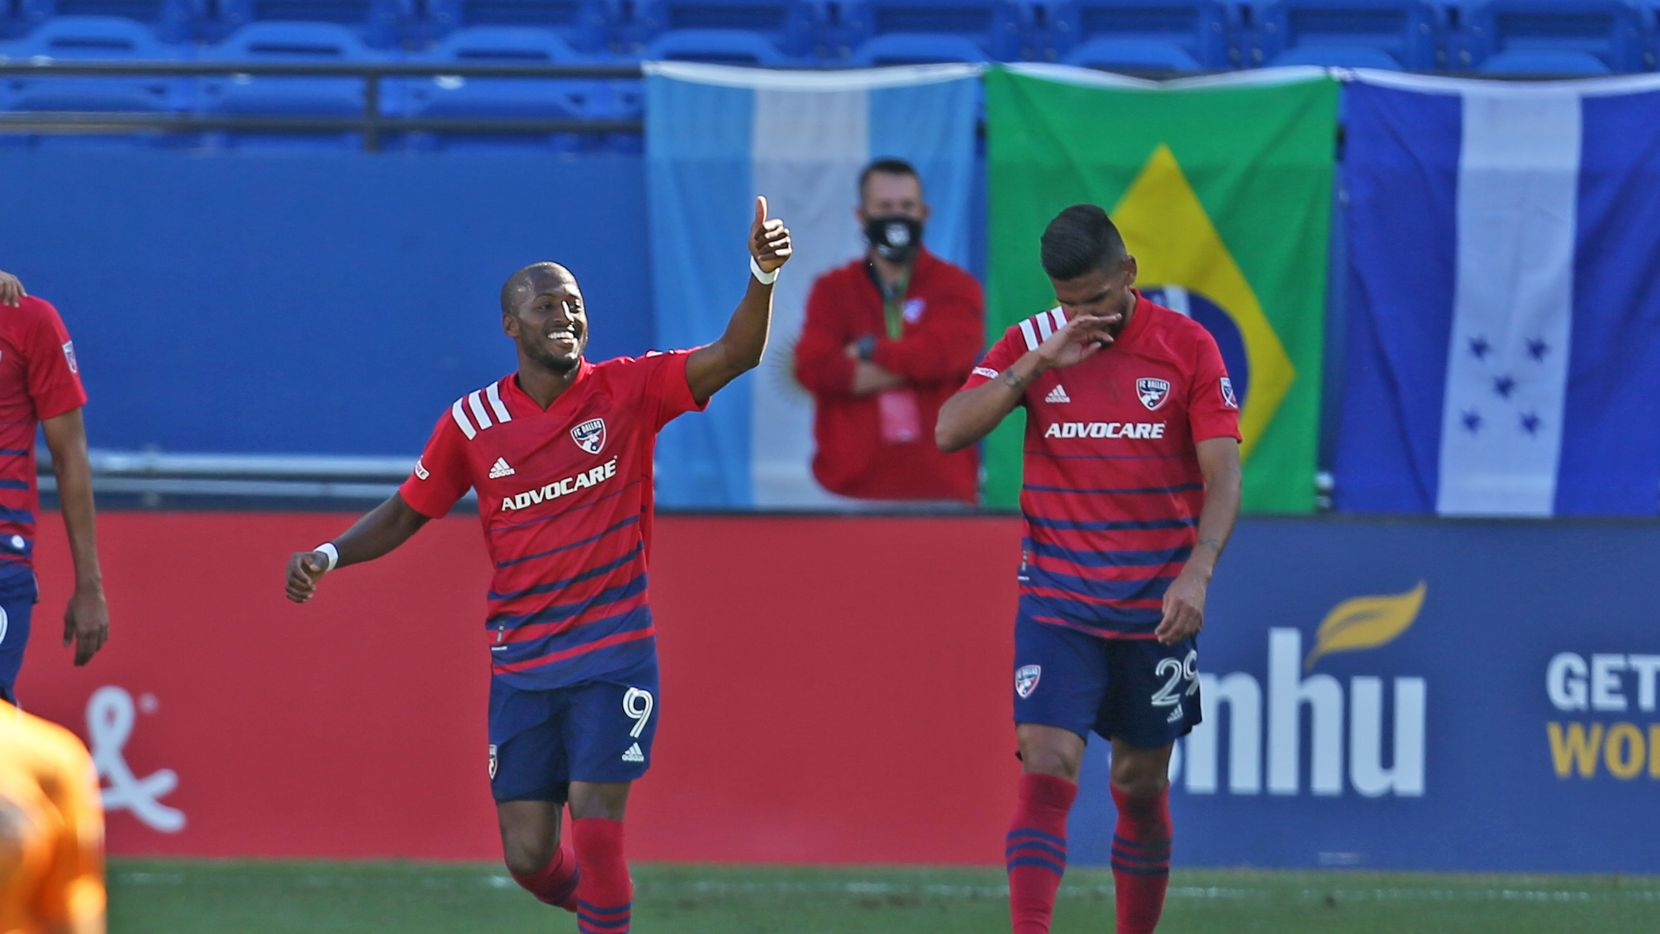 FRISCO, TX - OCTOBER 31: Fafa Picault #9 of FC Dallas celebrates after scores 2nd goal during the MLS game between Houston Dynamo and FC Dallas at Toyota Stadium on October 31, 2020 in Frisco, Texas. (Photo by Omar Vega / Al Dia)